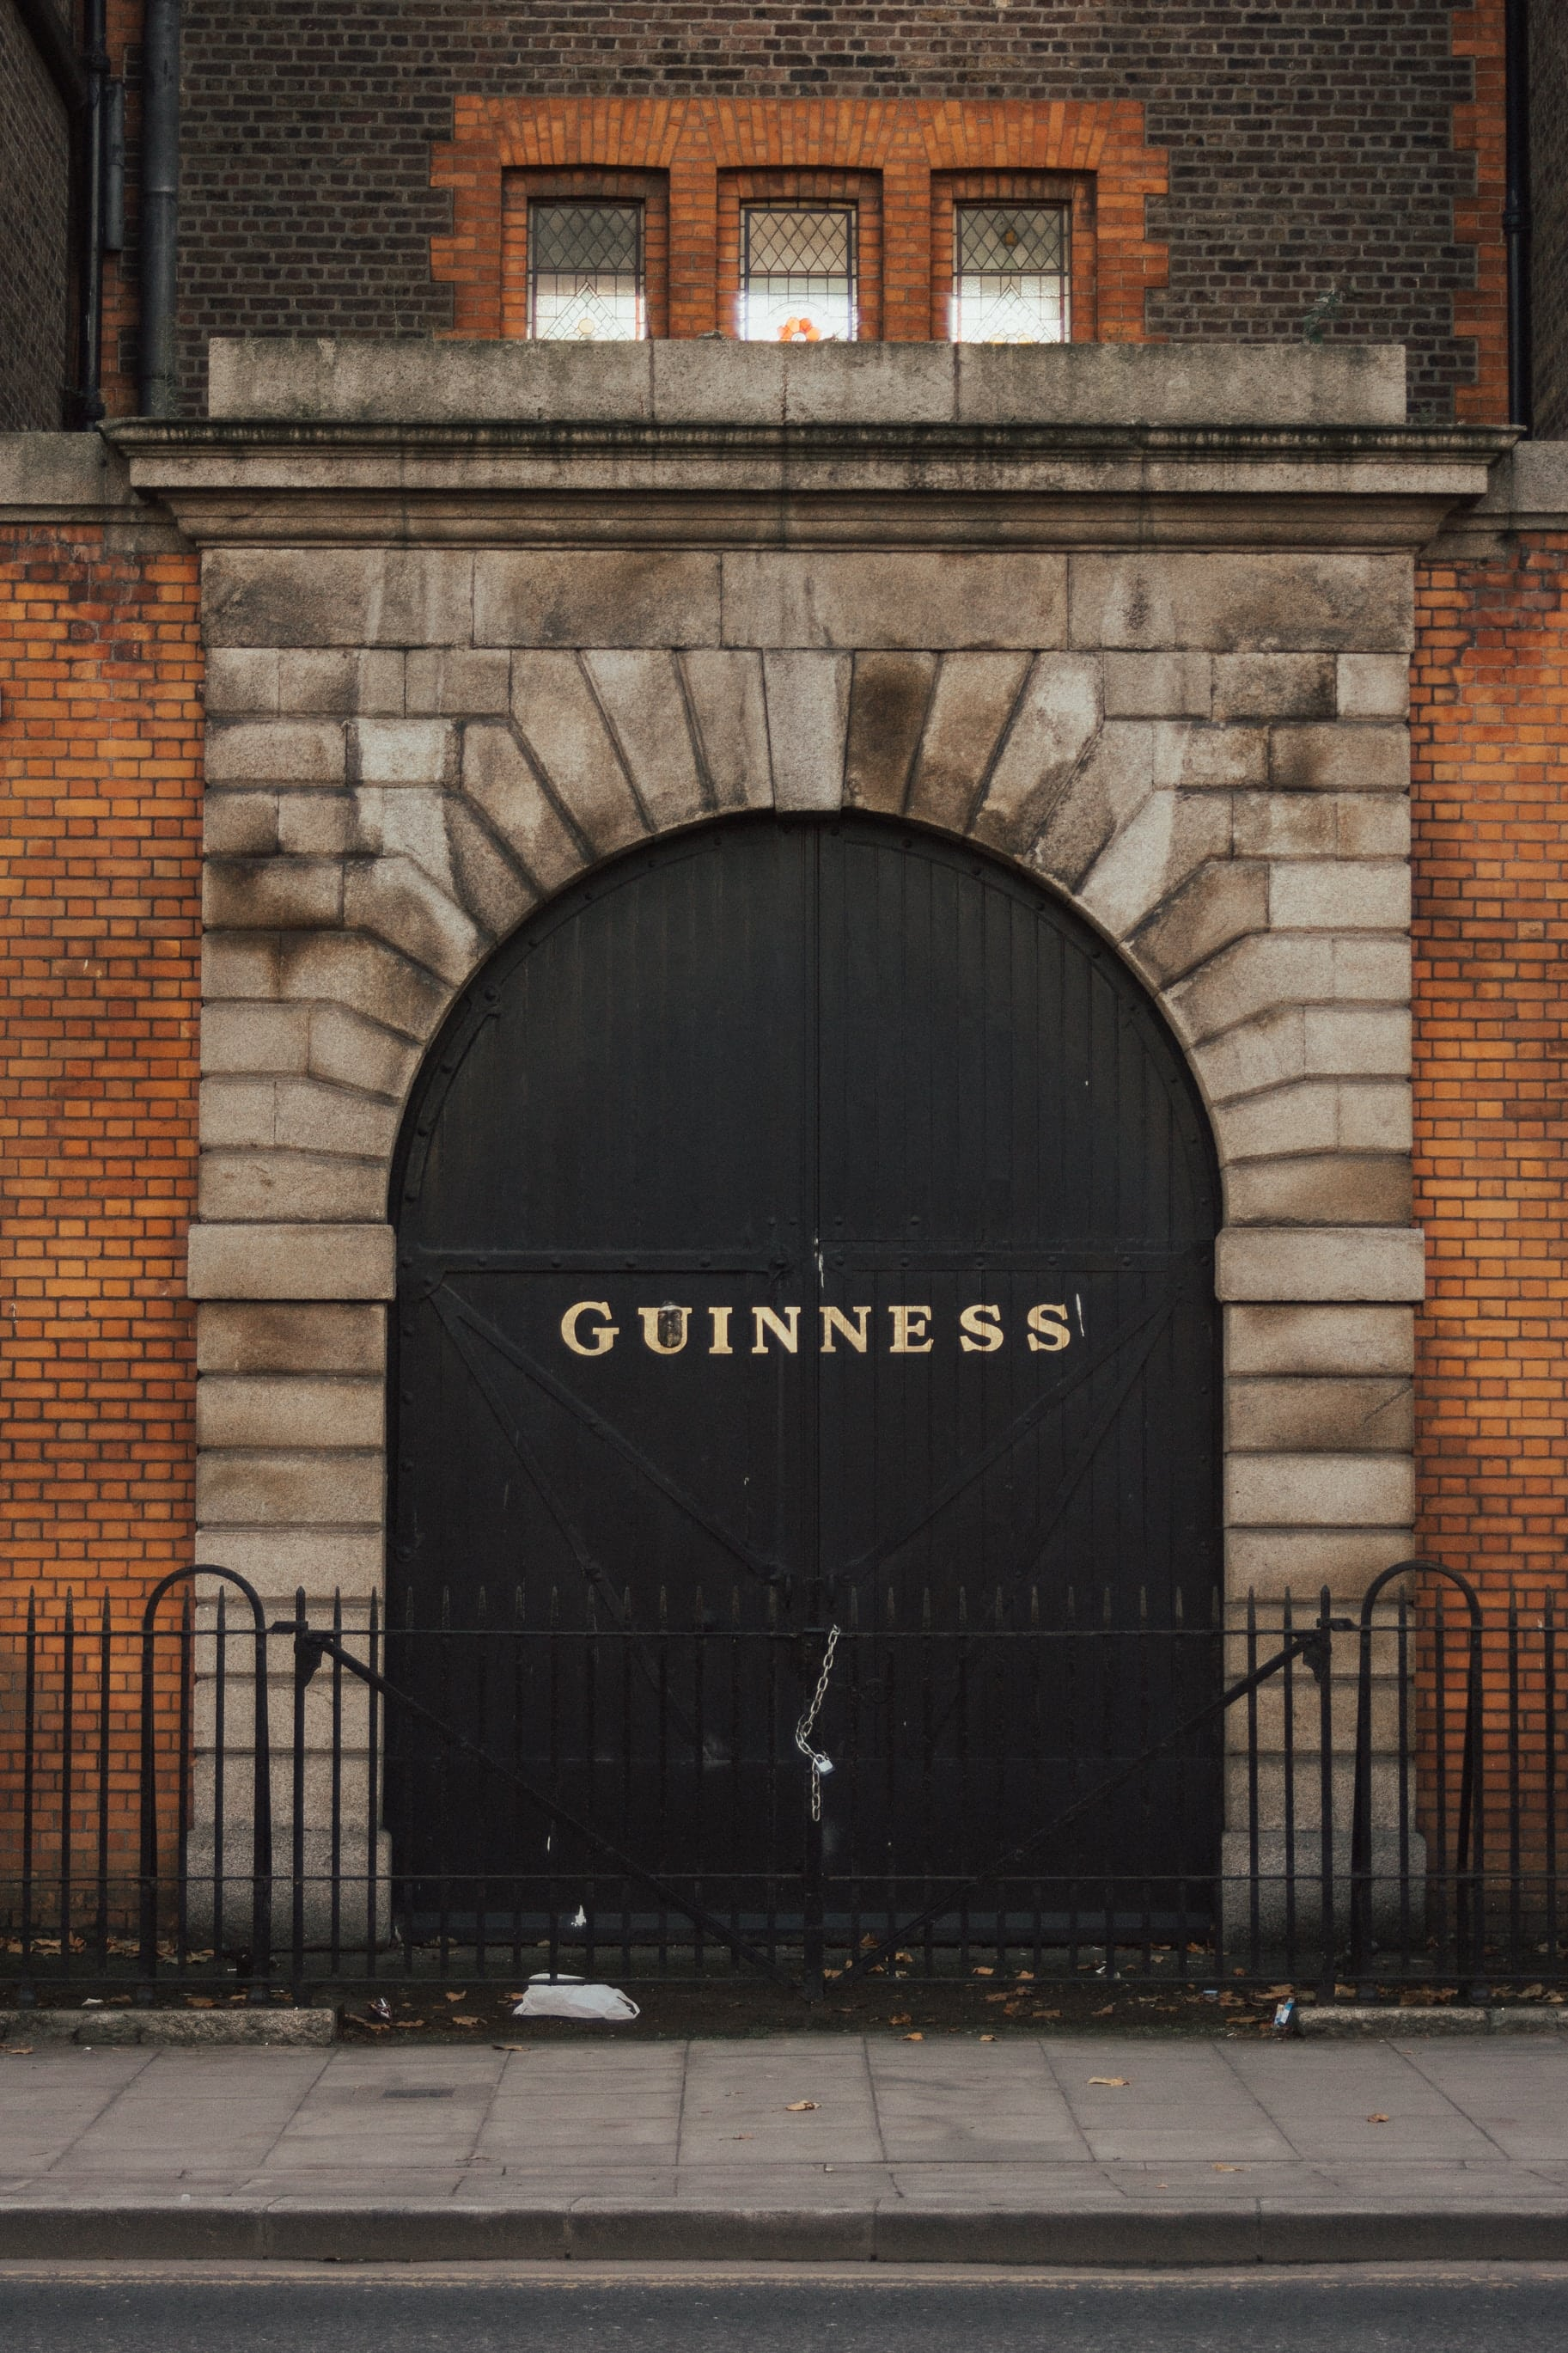 the arched stonebuilt entrance to a Guiness brewery in Dublin